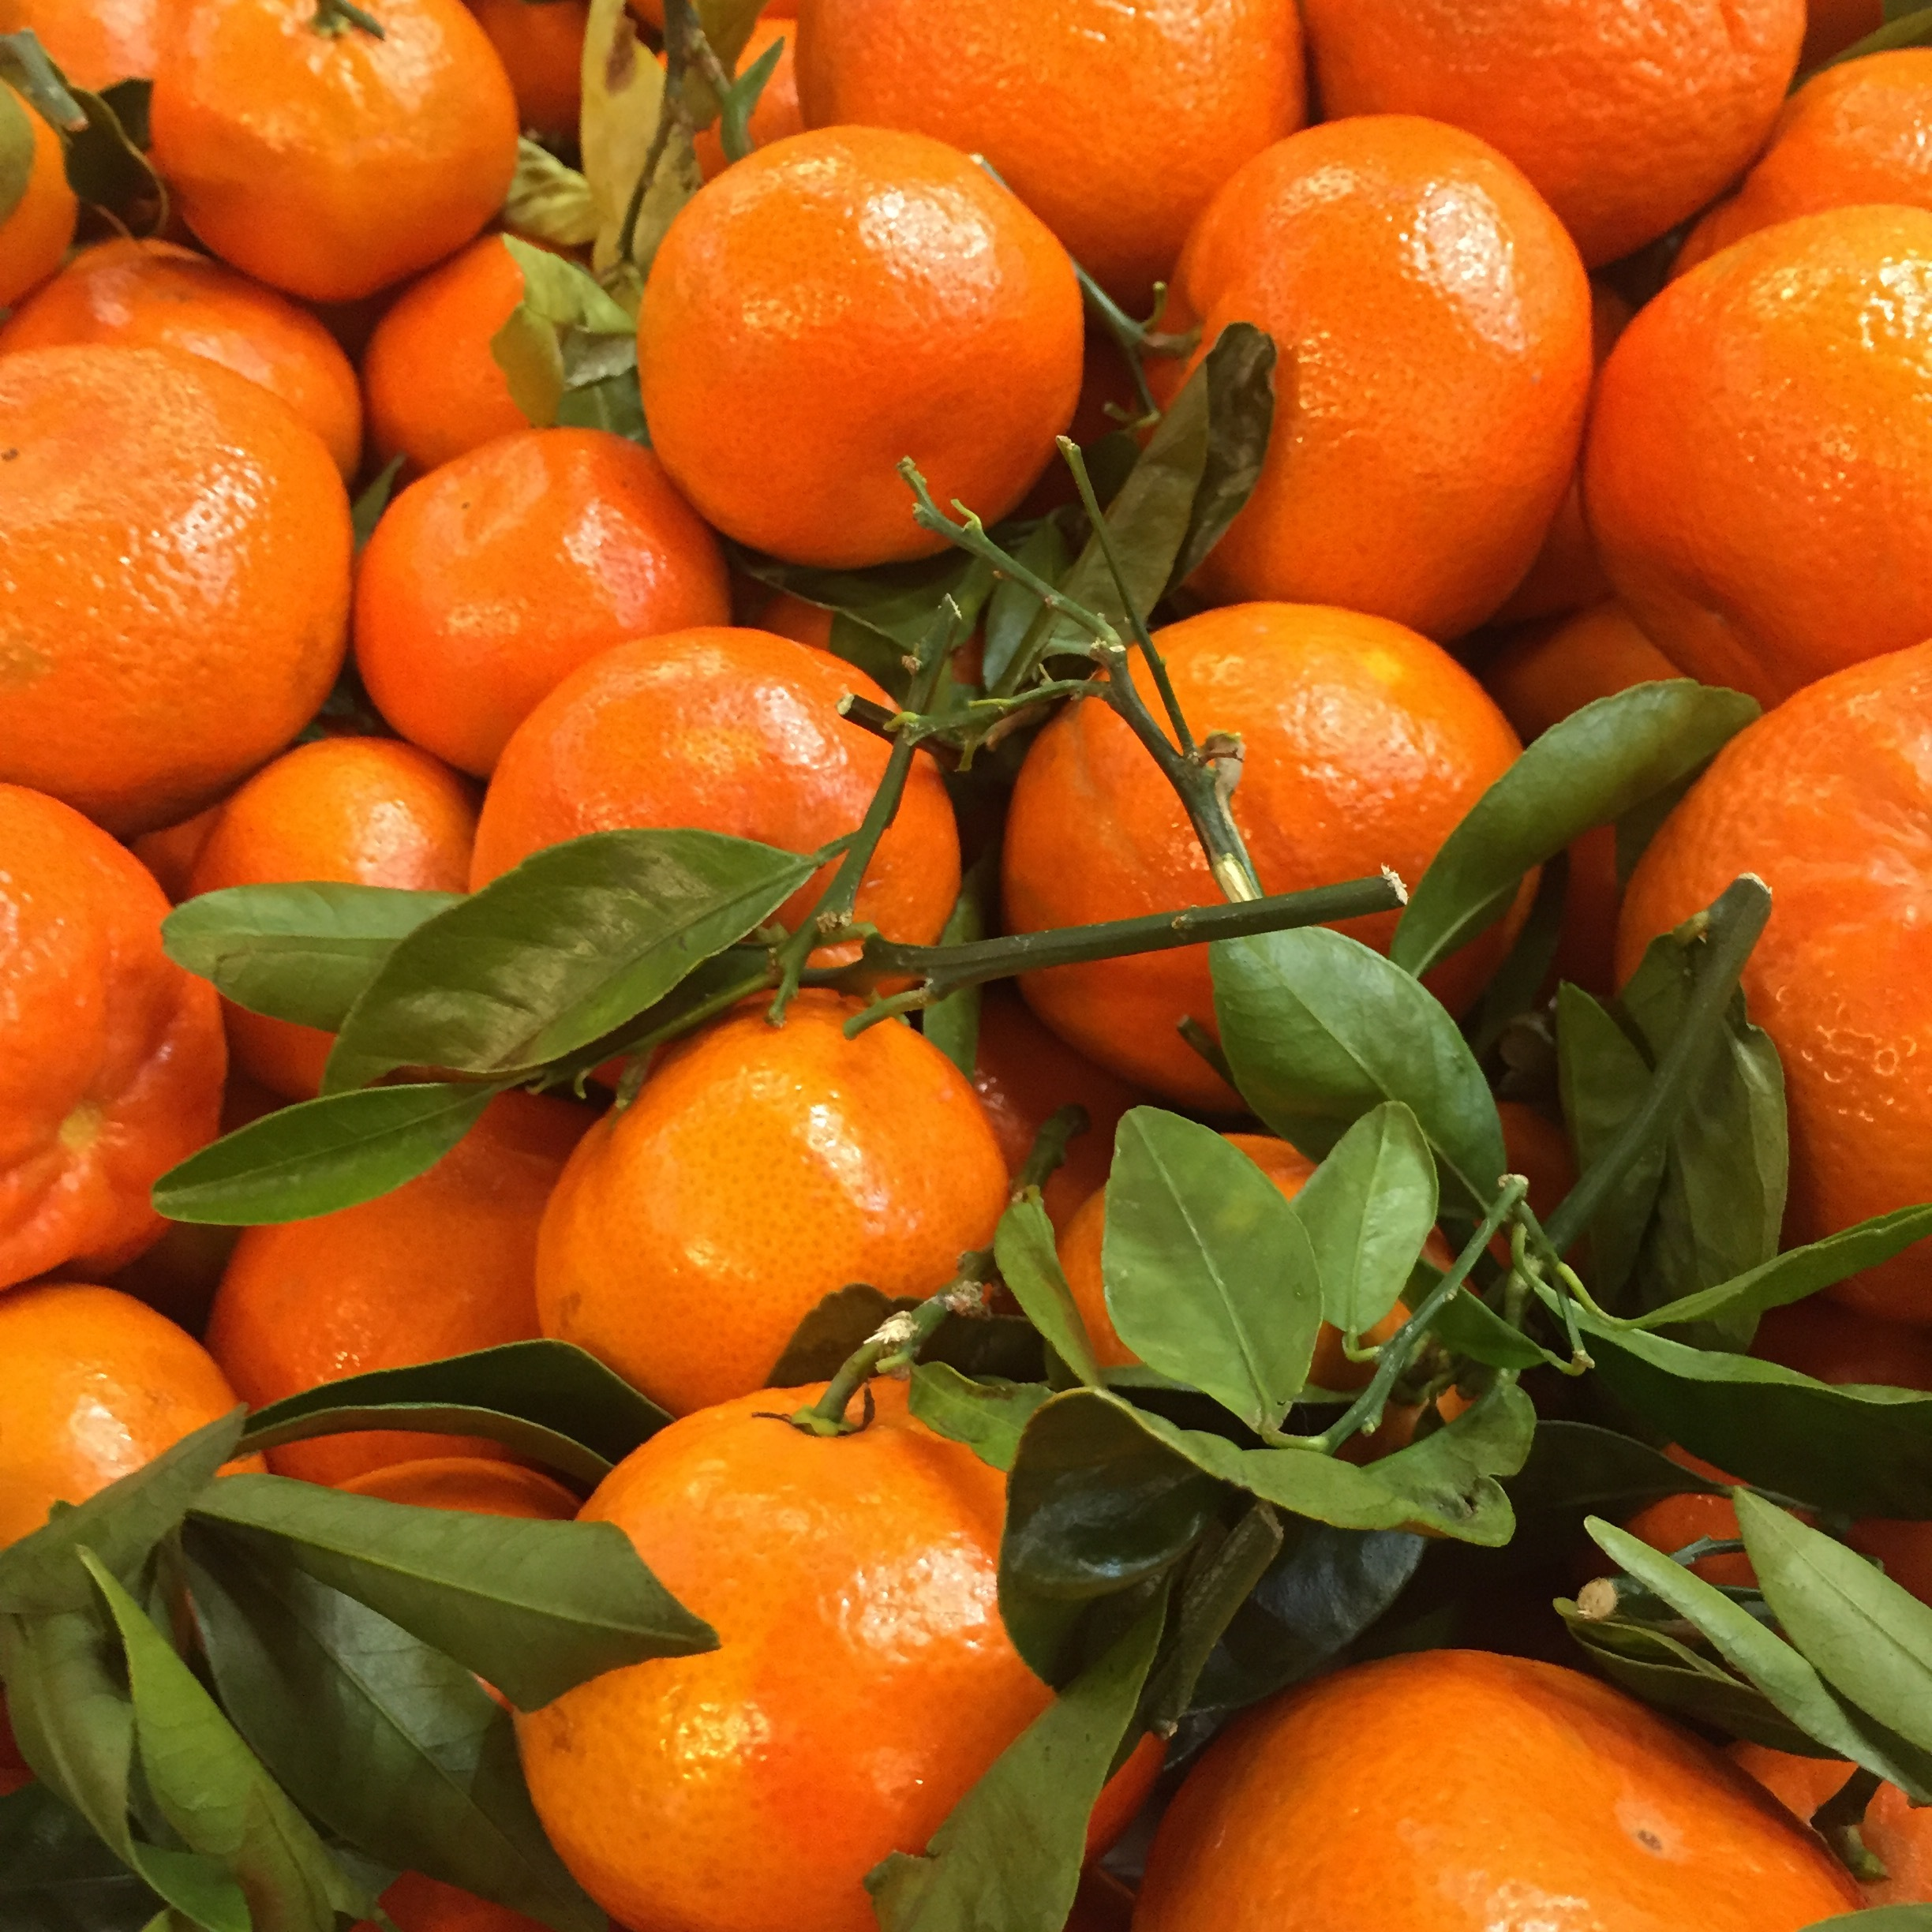 Now is the time to buy citrus! Check out our selection at Russo's this week.